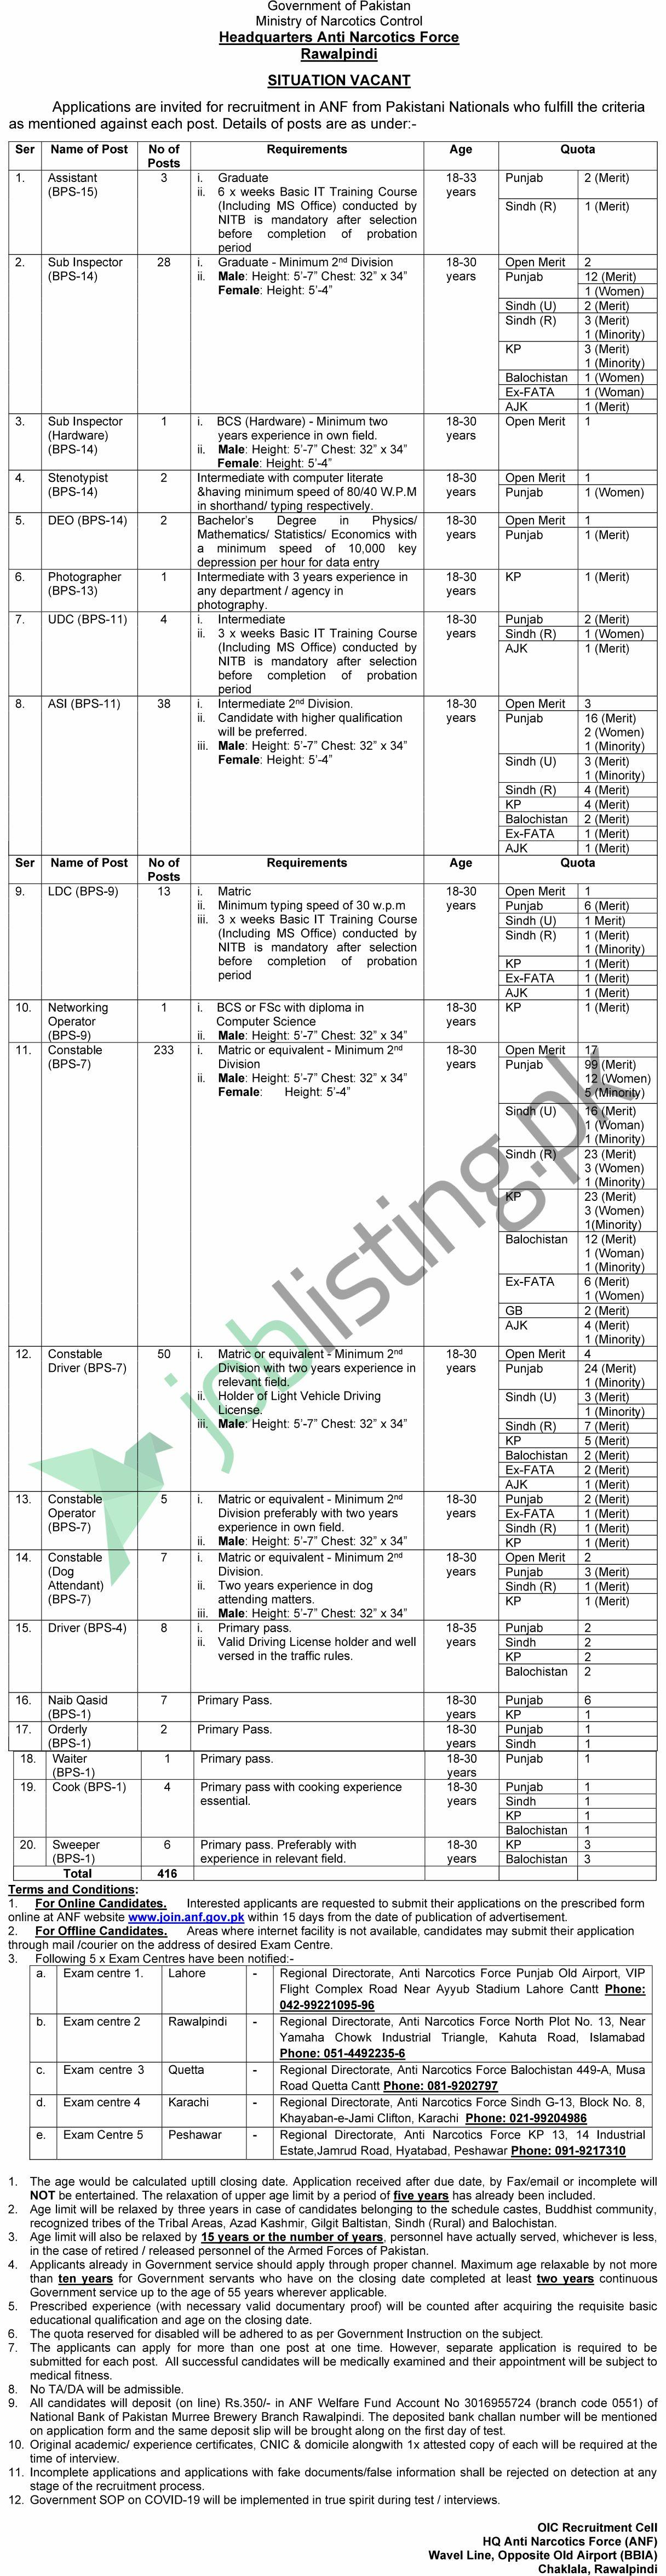 Anti Narcotics Force Jobs 2020 Advertisement